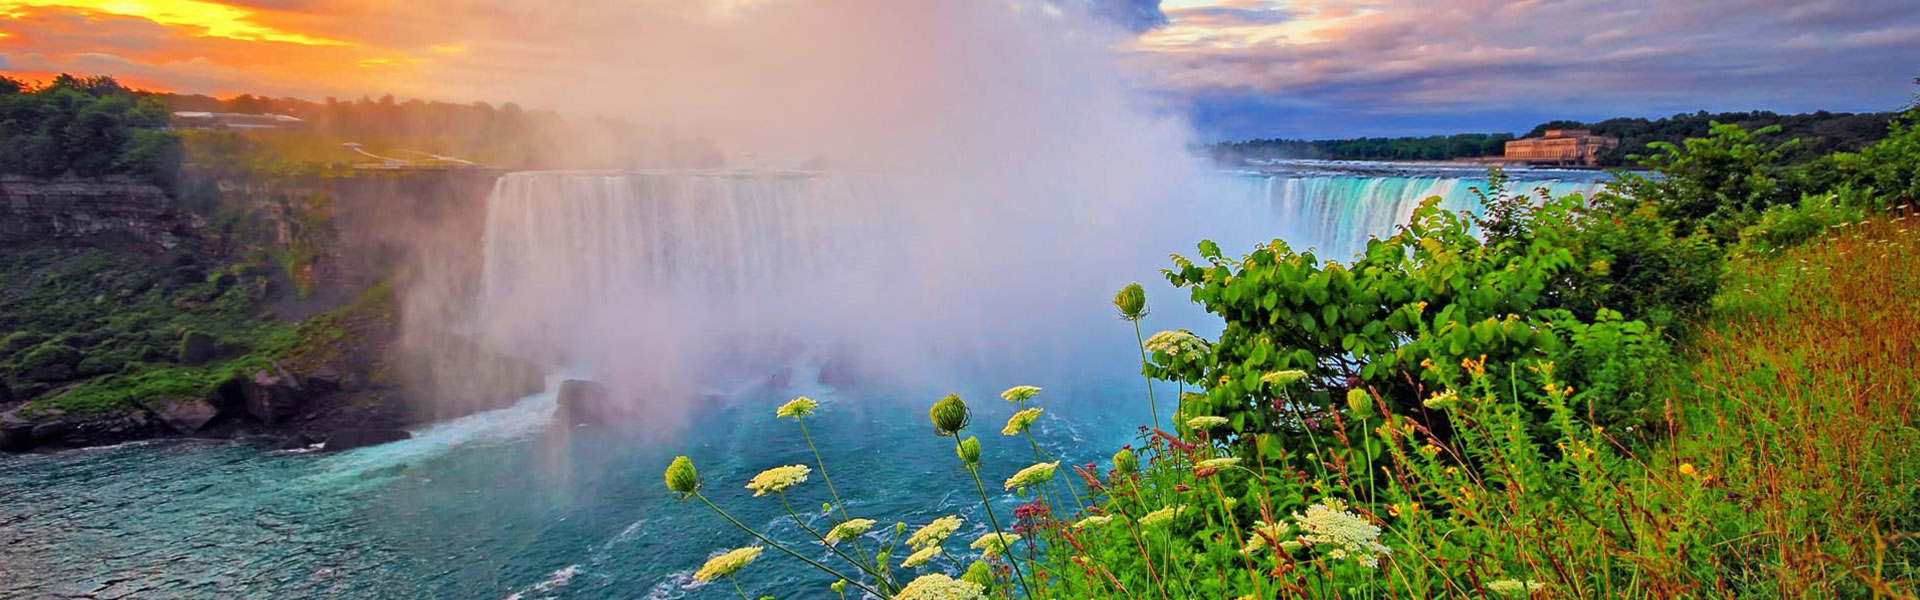 Unique Things and Fun Facts About Niagara Falls